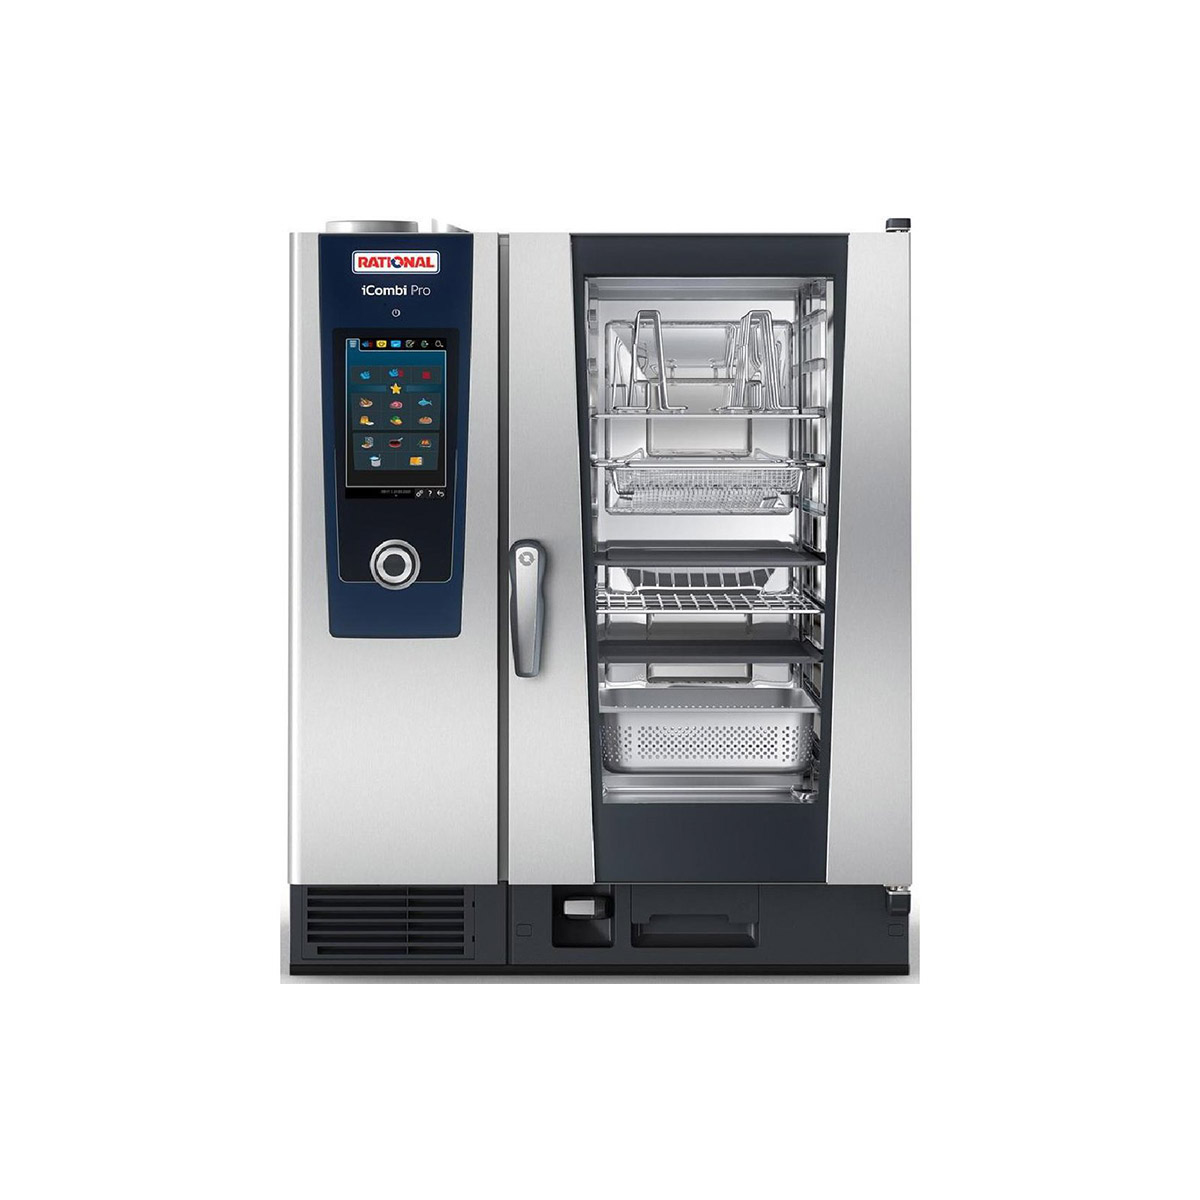 Rational iCombi Pro 10-1/1/G/N 10 Grid 1/1GN Natural Gas Combination Oven